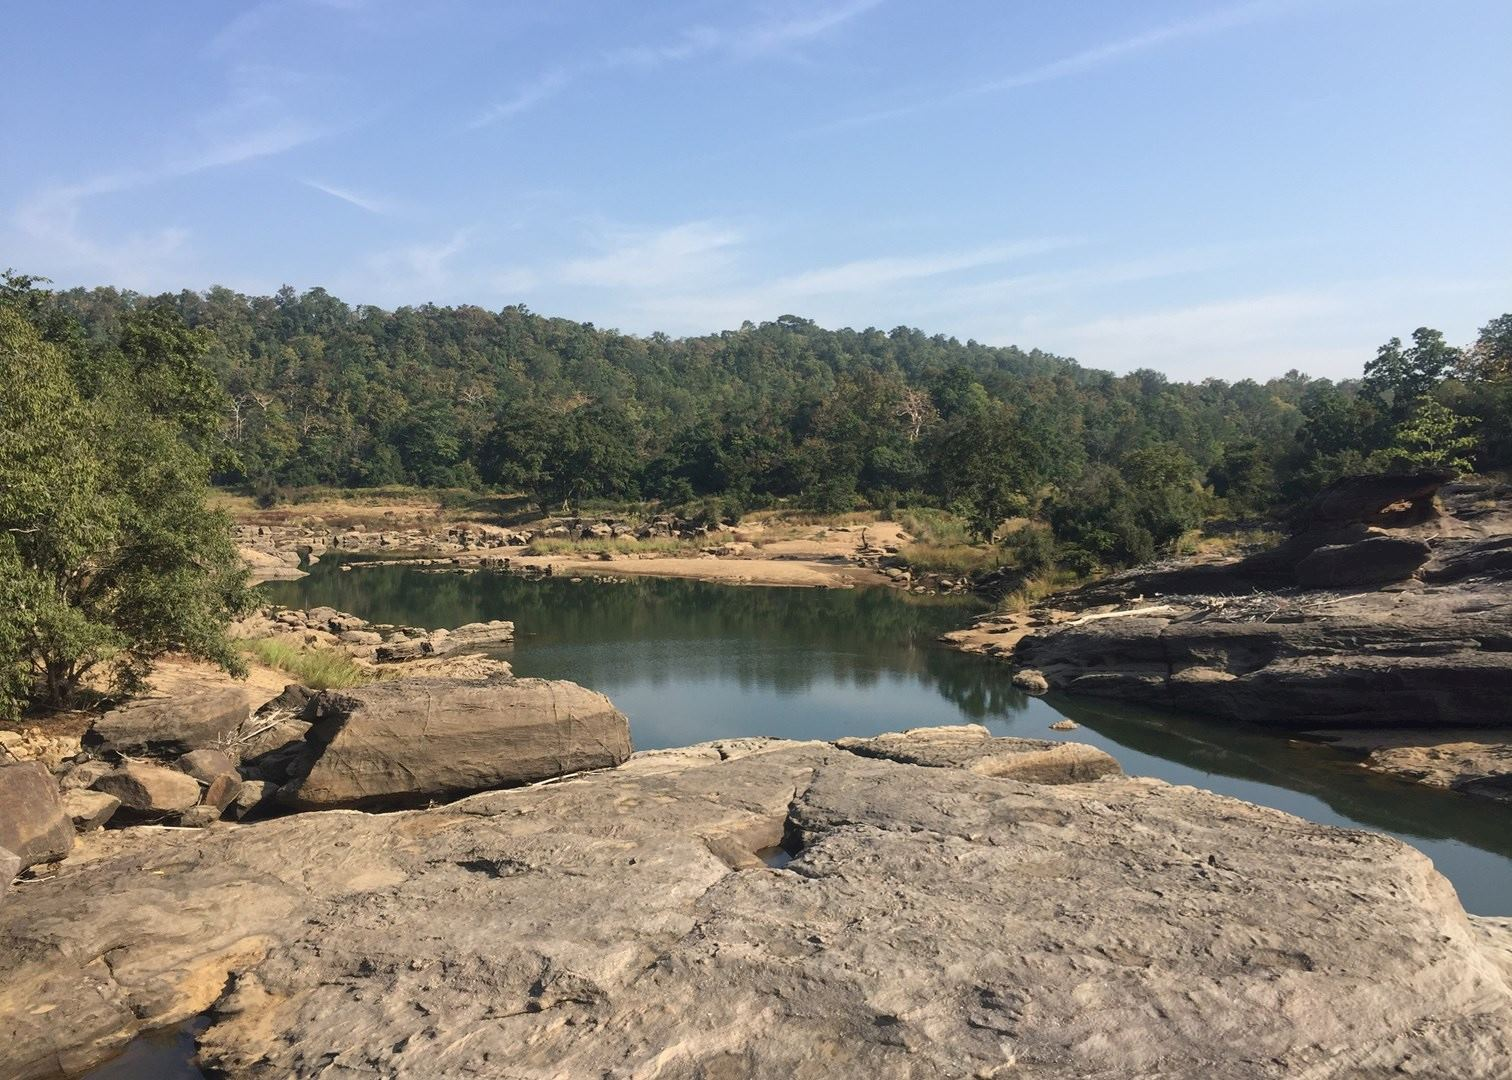 national parks in india The protected national parks of india are the perfect place to see elephants, tigers, and more book an india luxury safari with ker & downey today.